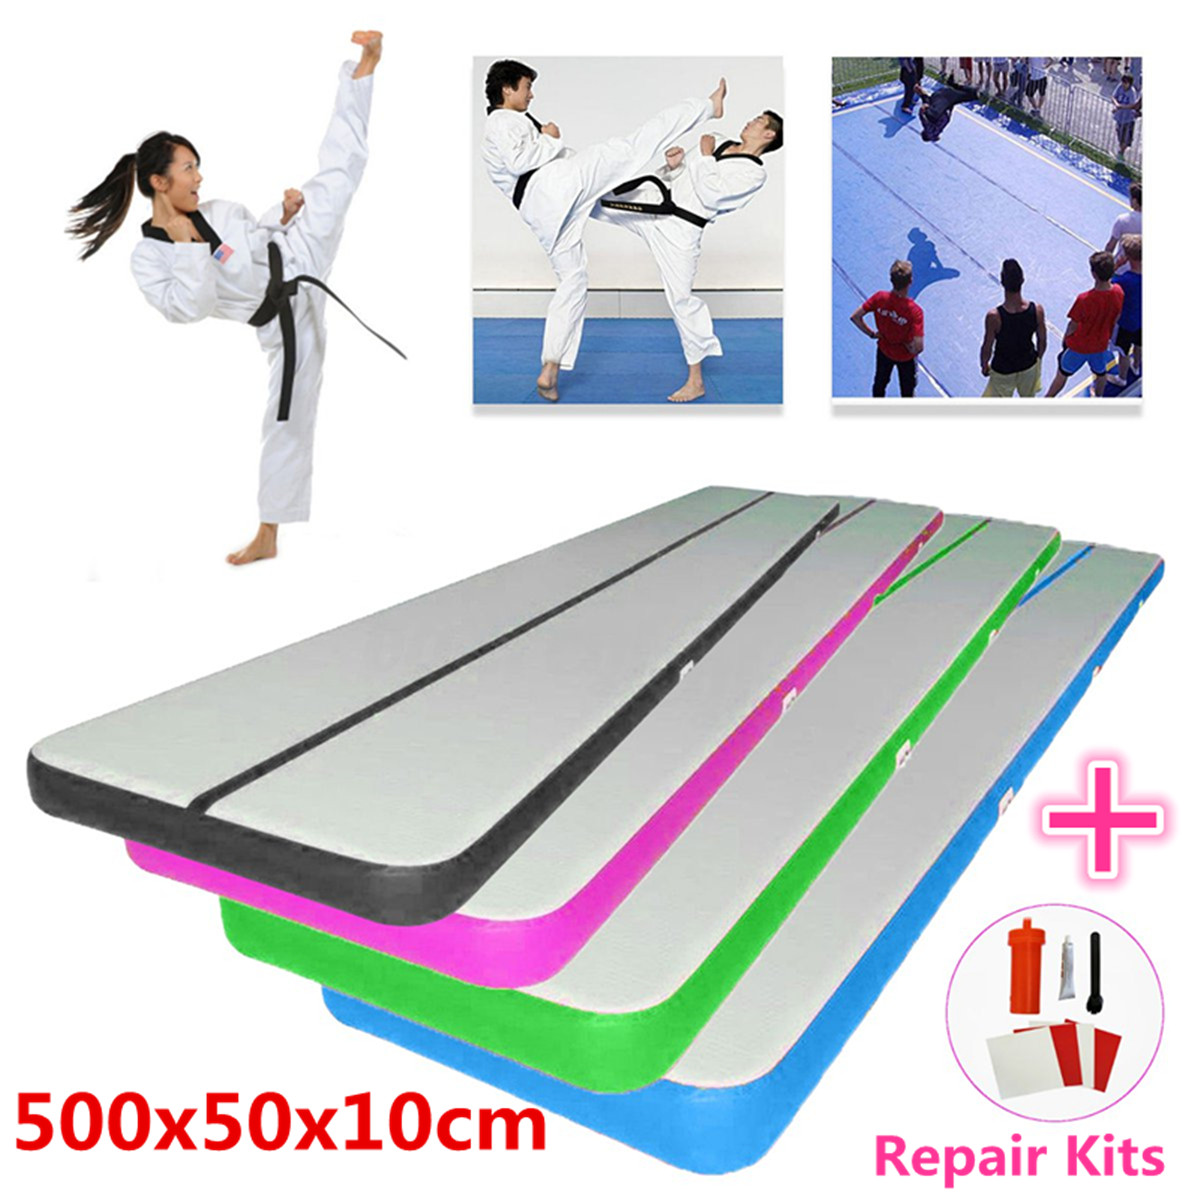 500x50x10cm Airtrack Air Track Floor Home Inflatable Gymnastics Tumbling Mat GYM Inflatable Balance Equipment Exercise new arrival yoga mats 0 9 3m inflatable tumble track trampoline air track floor home gym gymnastics inflatable air tumbling mat